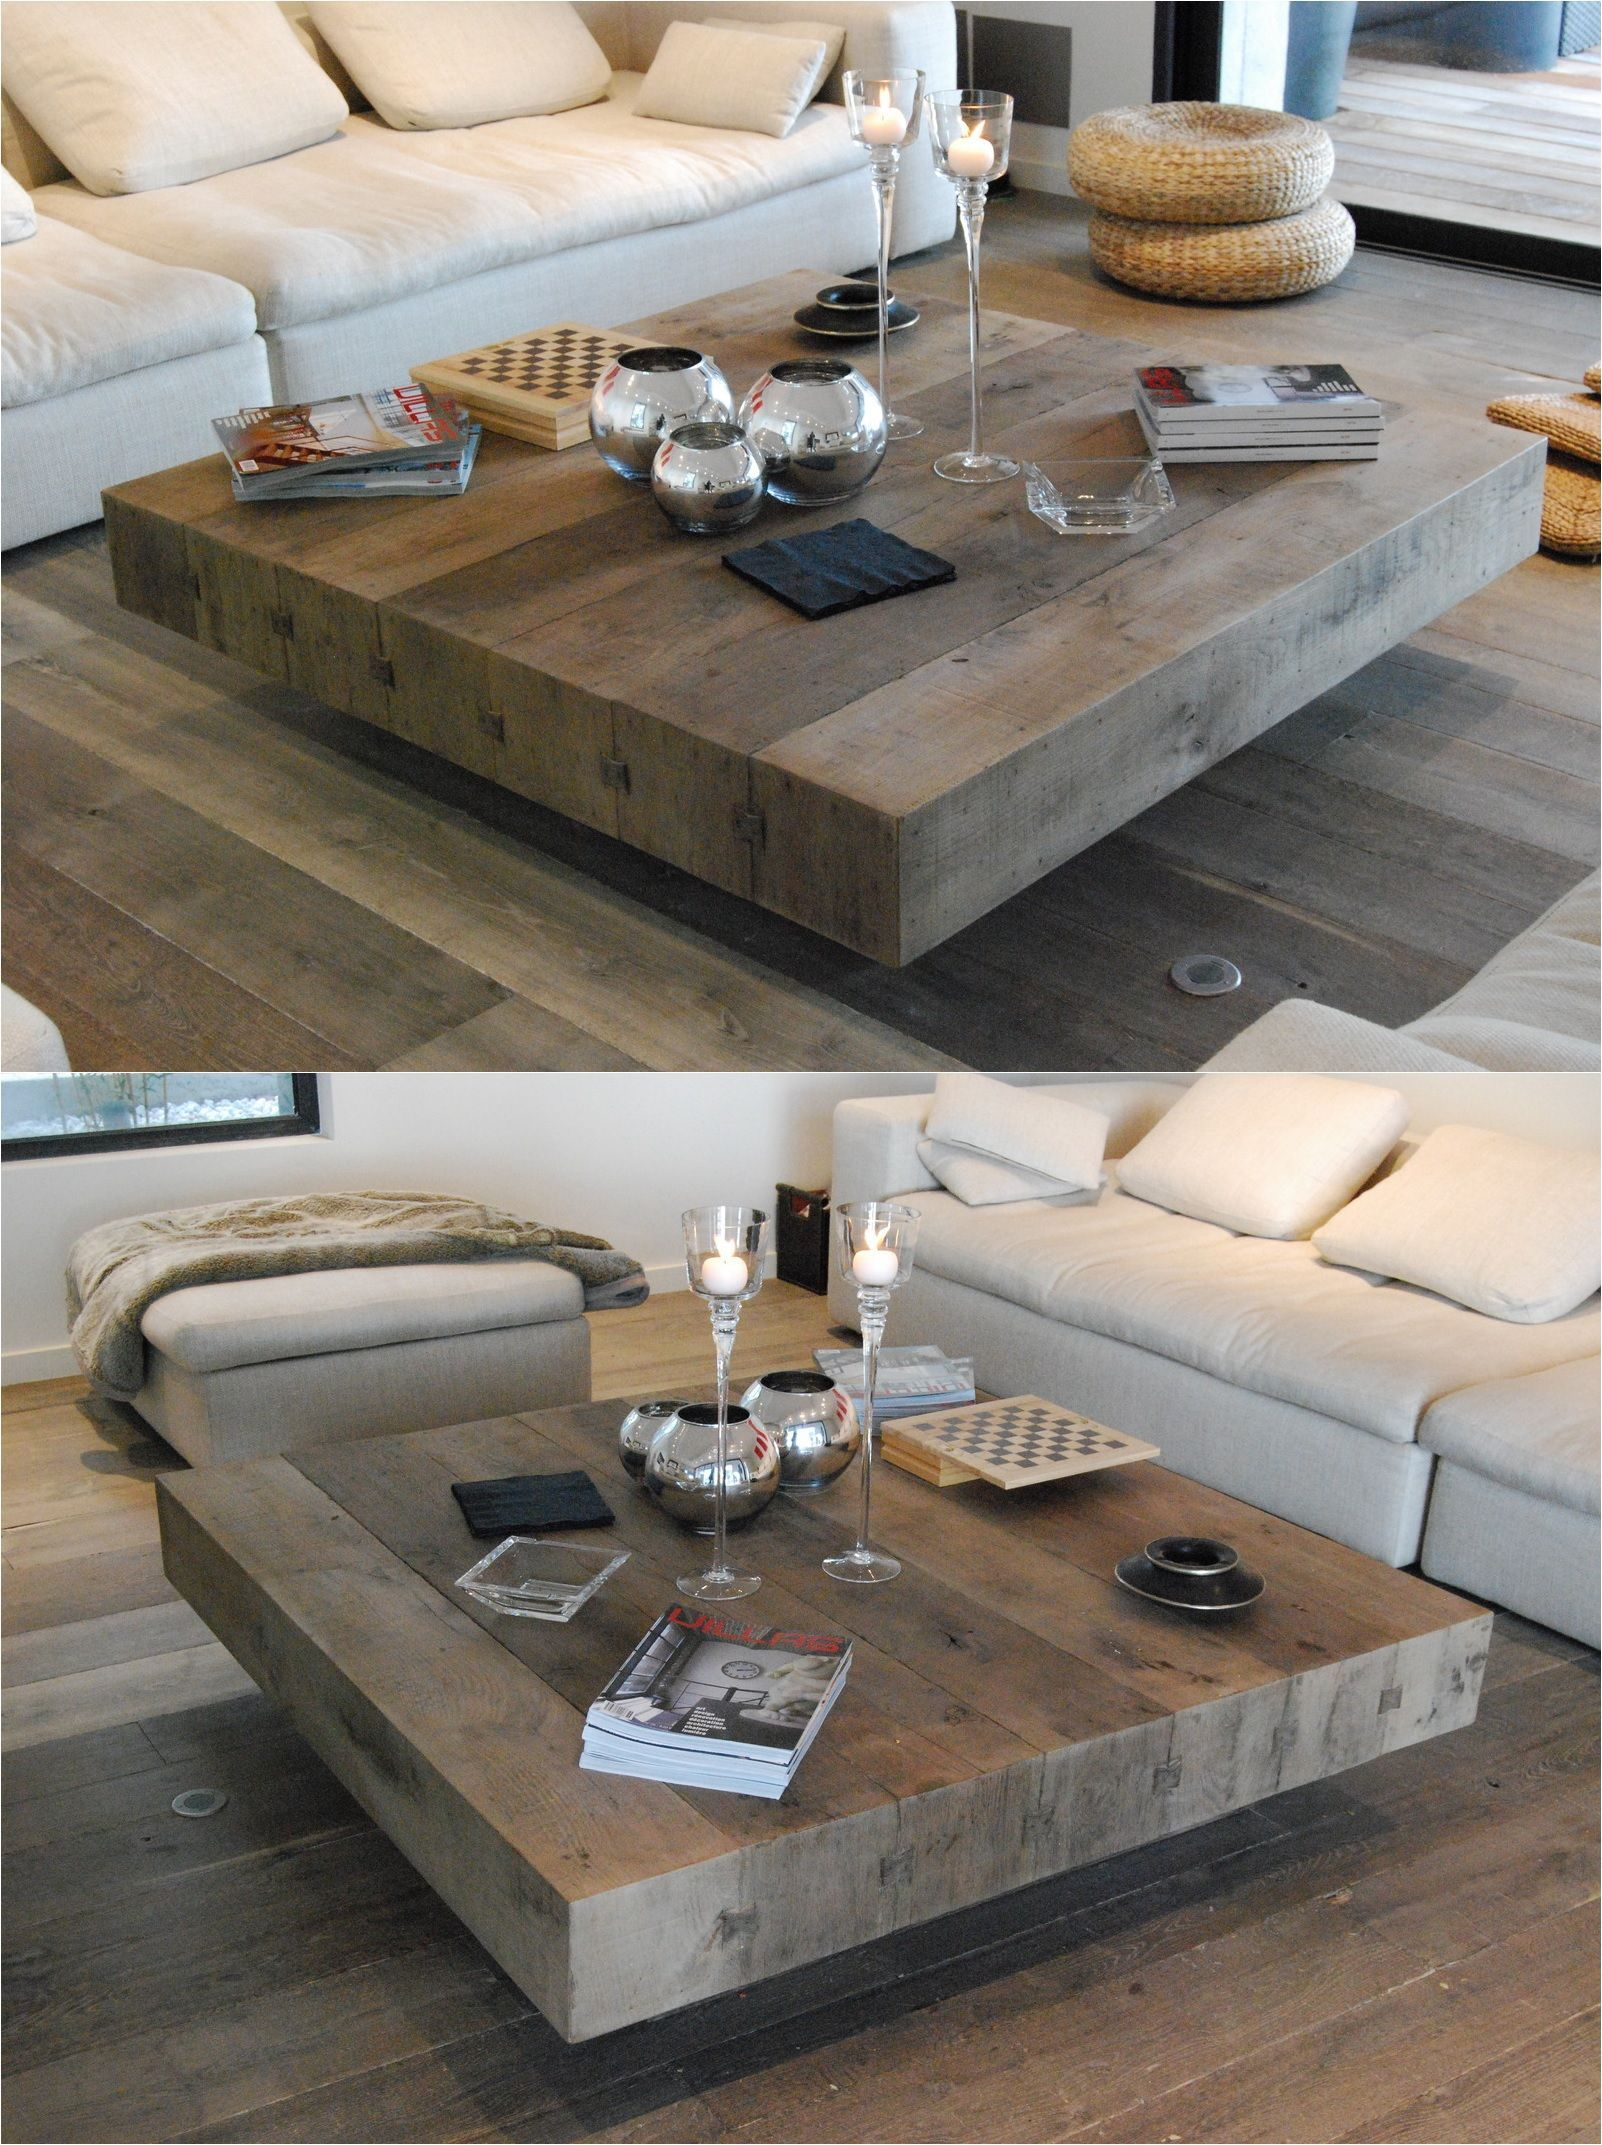 Extra Large Rustic Coffee Table Download Bonheur Wooden Handmade Square Coffee Table Square Wooden Coffee Table Large Square Coffee Table Rustic Coffee Tables